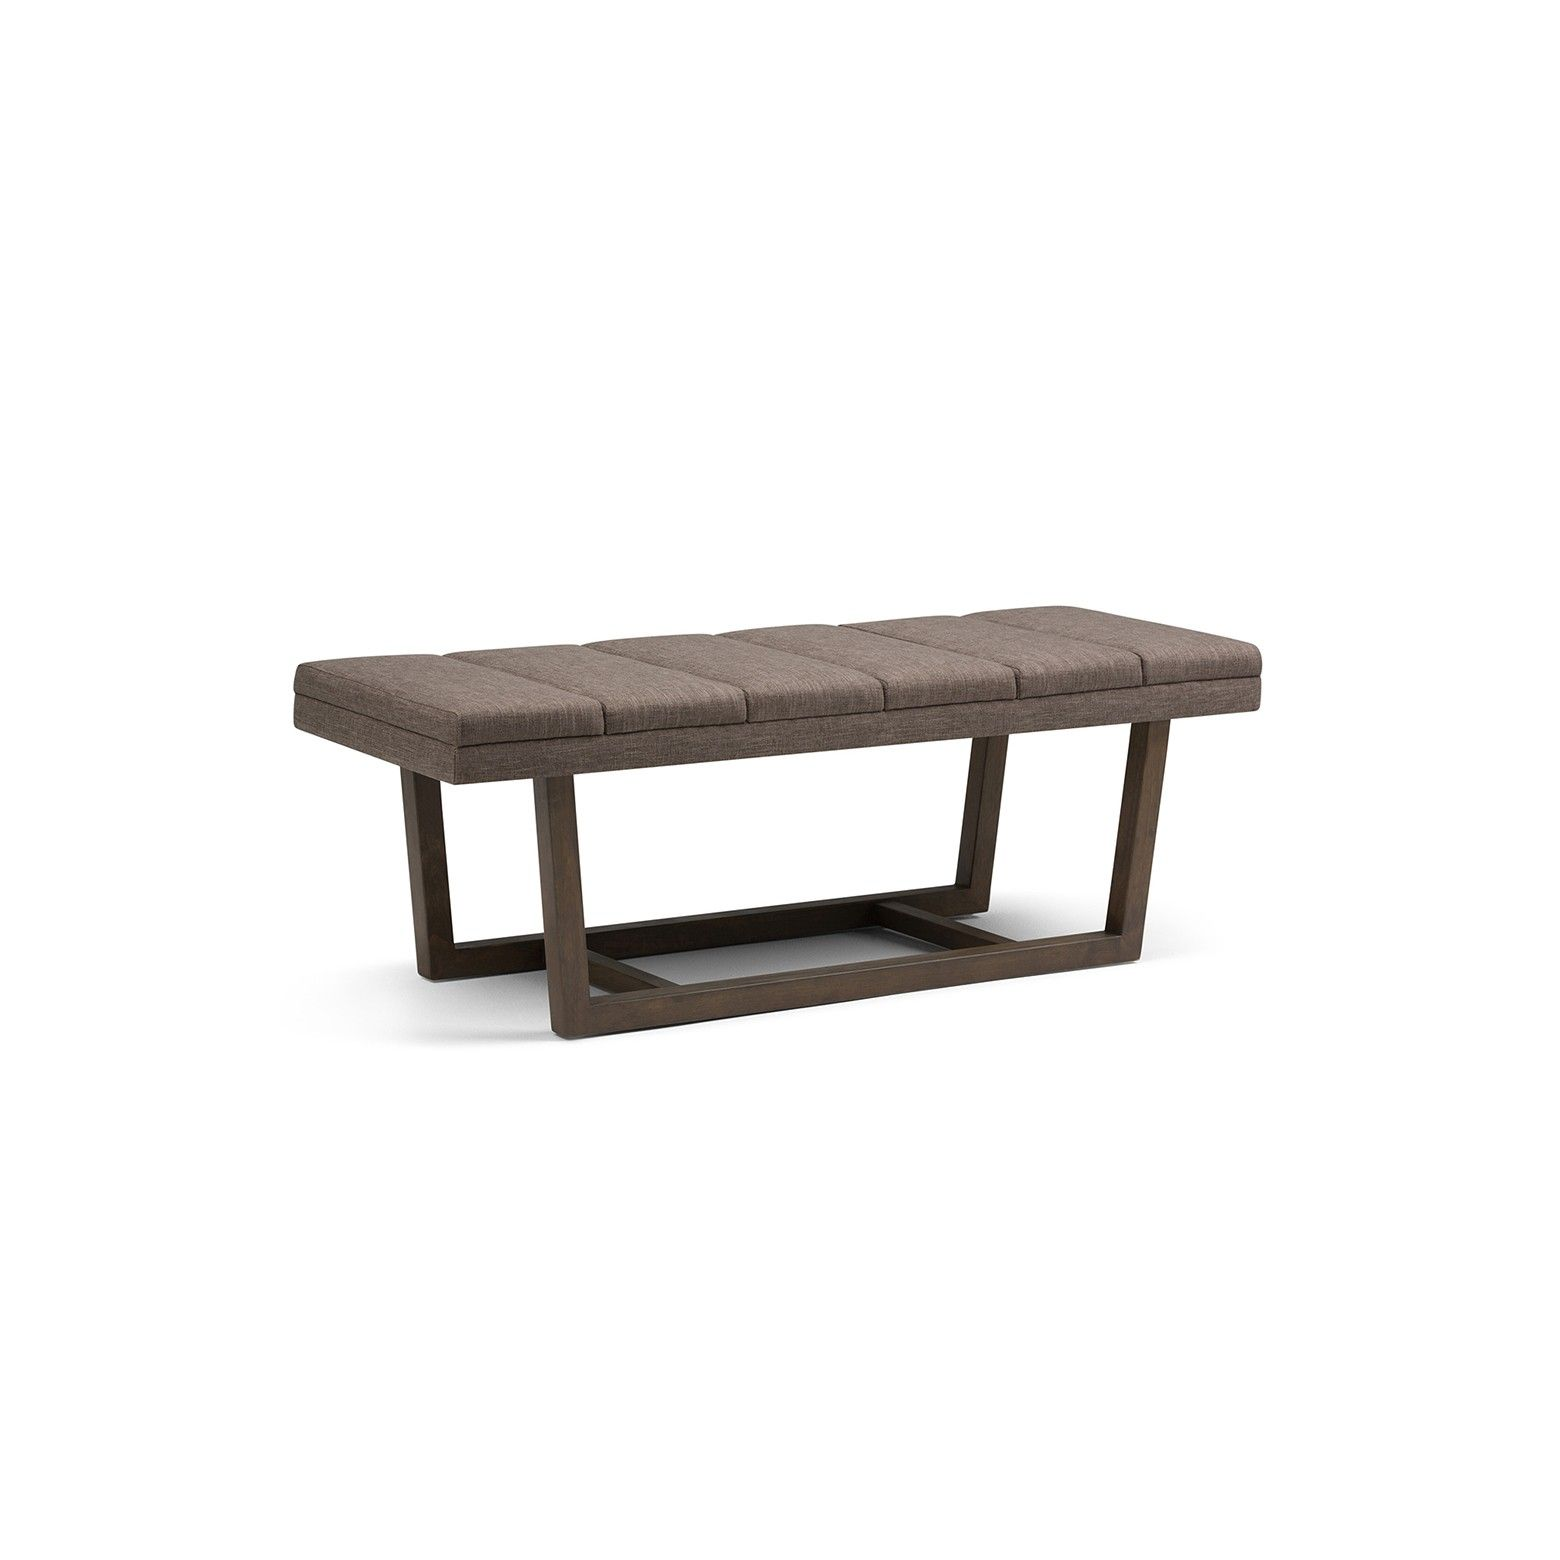 Outstanding The Jenson Ottoman Bench From Simpli Home Features Andrewgaddart Wooden Chair Designs For Living Room Andrewgaddartcom